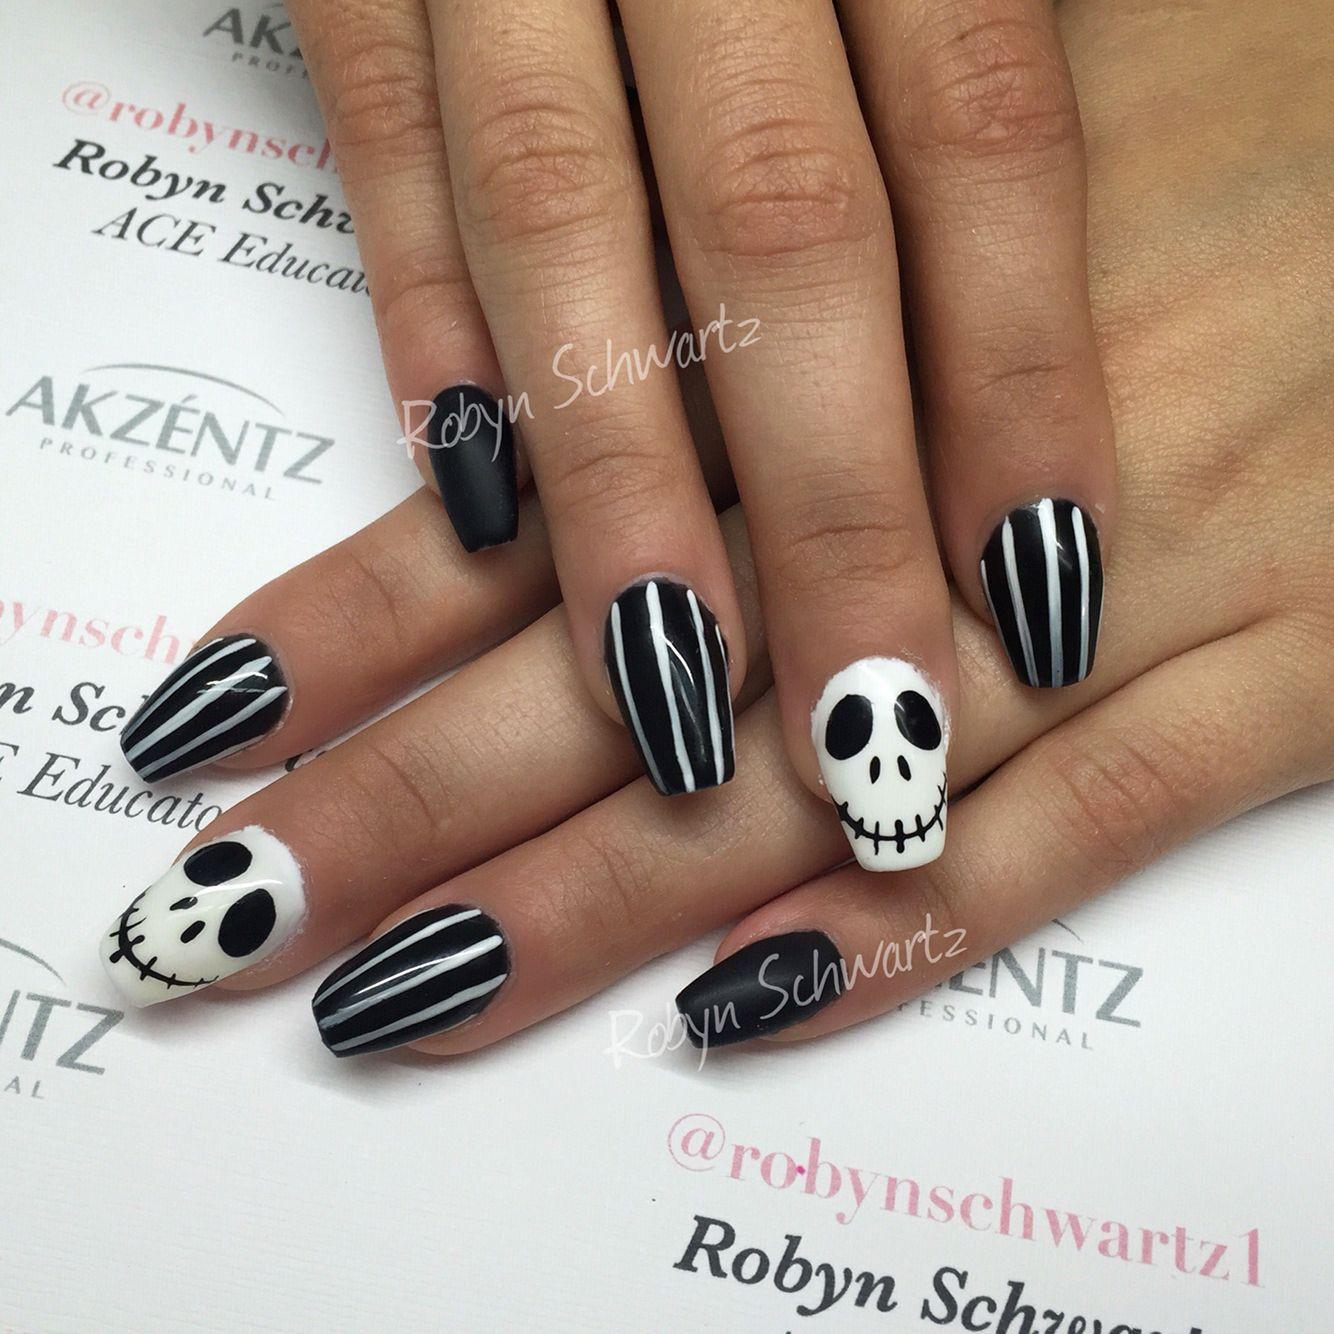 Halloween Nails Jack Style Gel Nails Coffin Nails Halloween Nails Gel Nails Coffin Nails